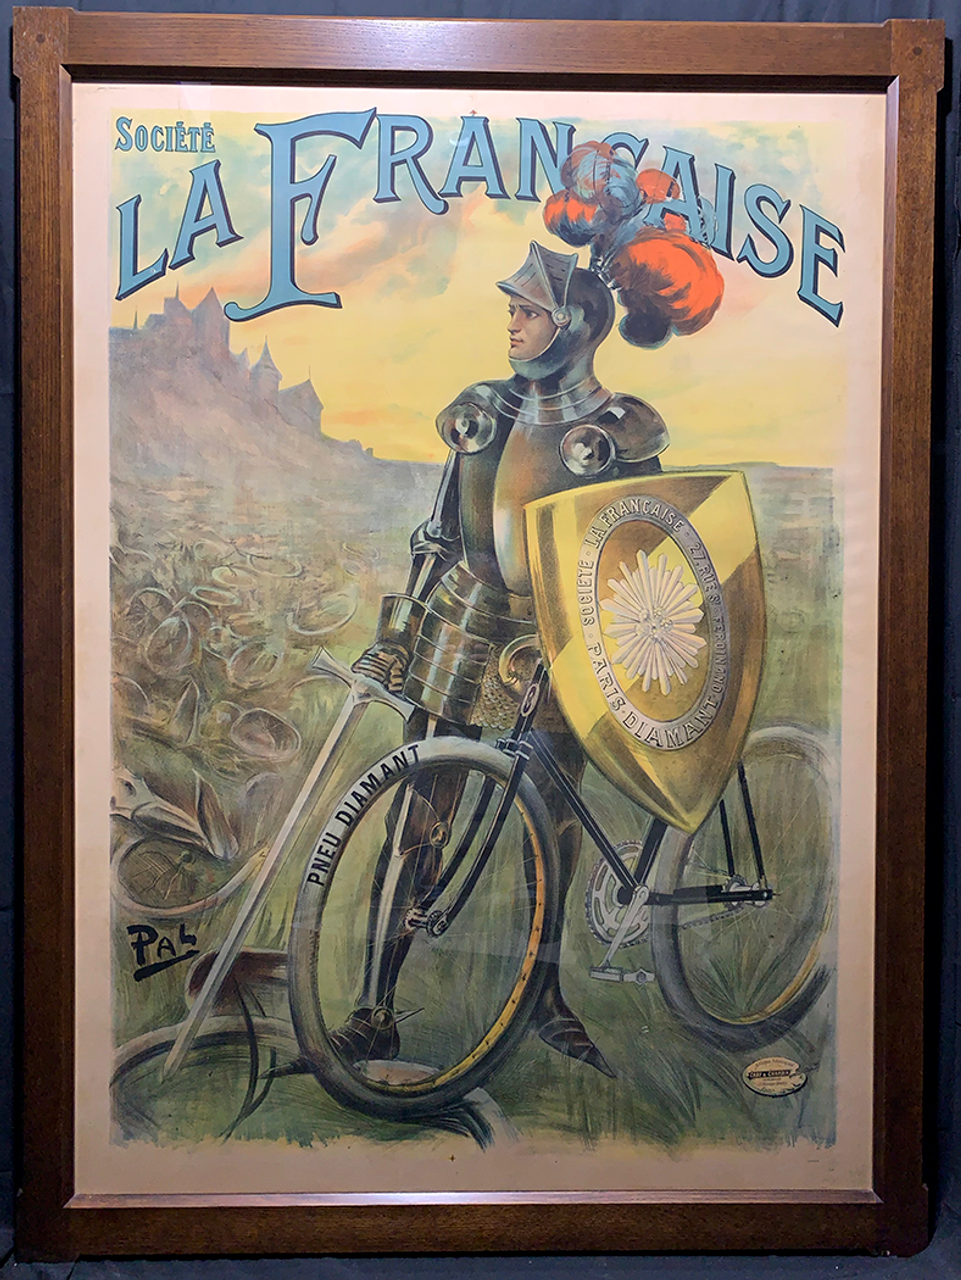 Societe La Francaise Knight Original Vintage  Bicycle Poster by PAL